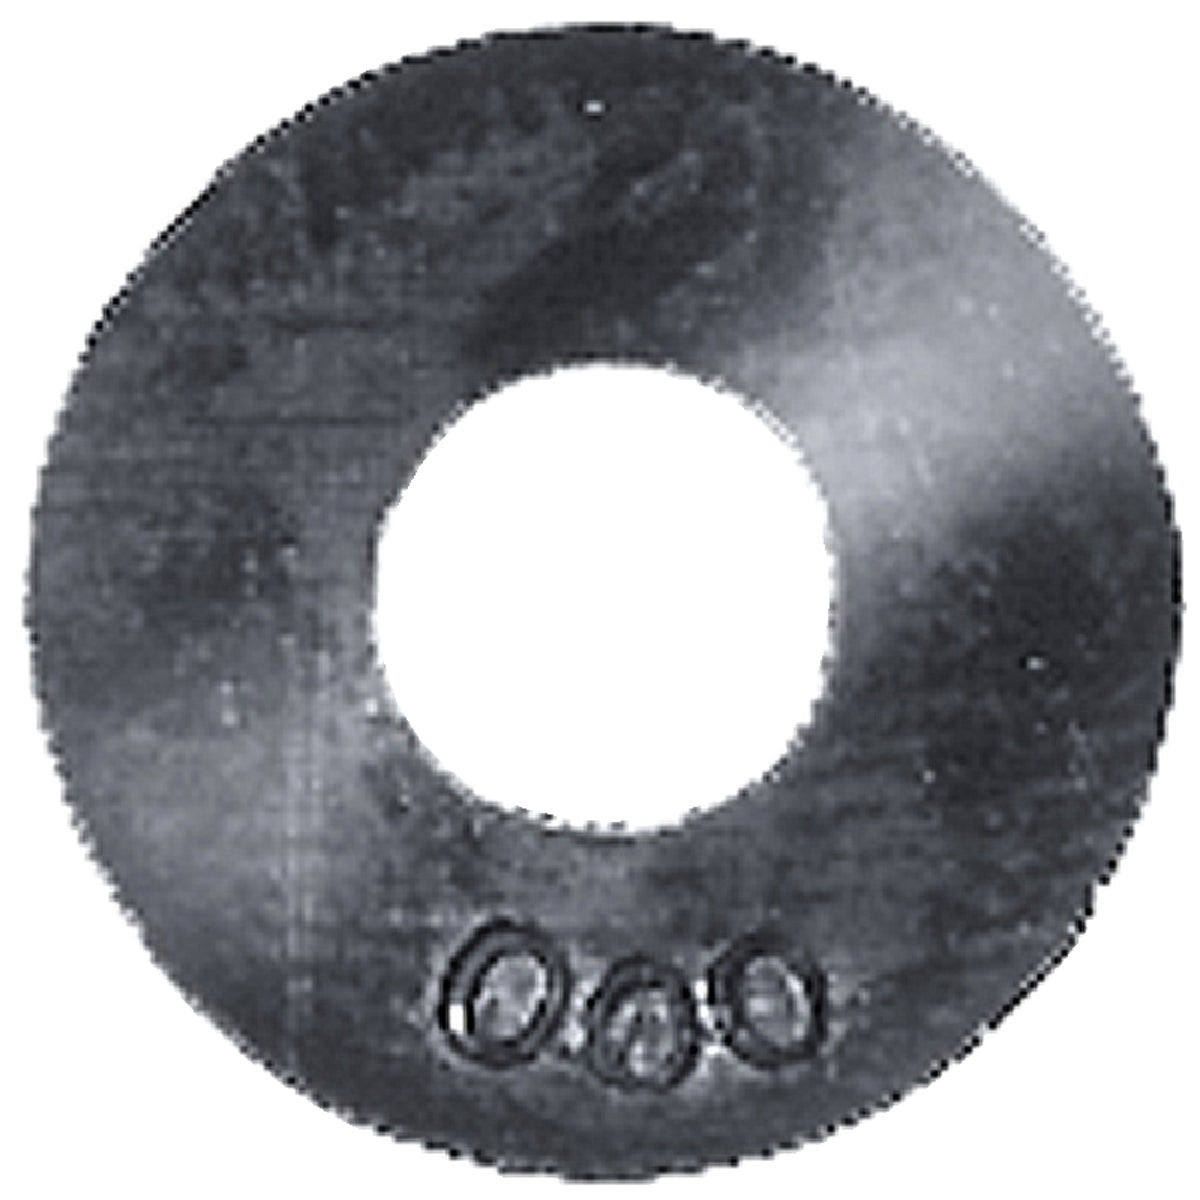 000 FLAT WASHER - 35061B by Danco Perfect Match